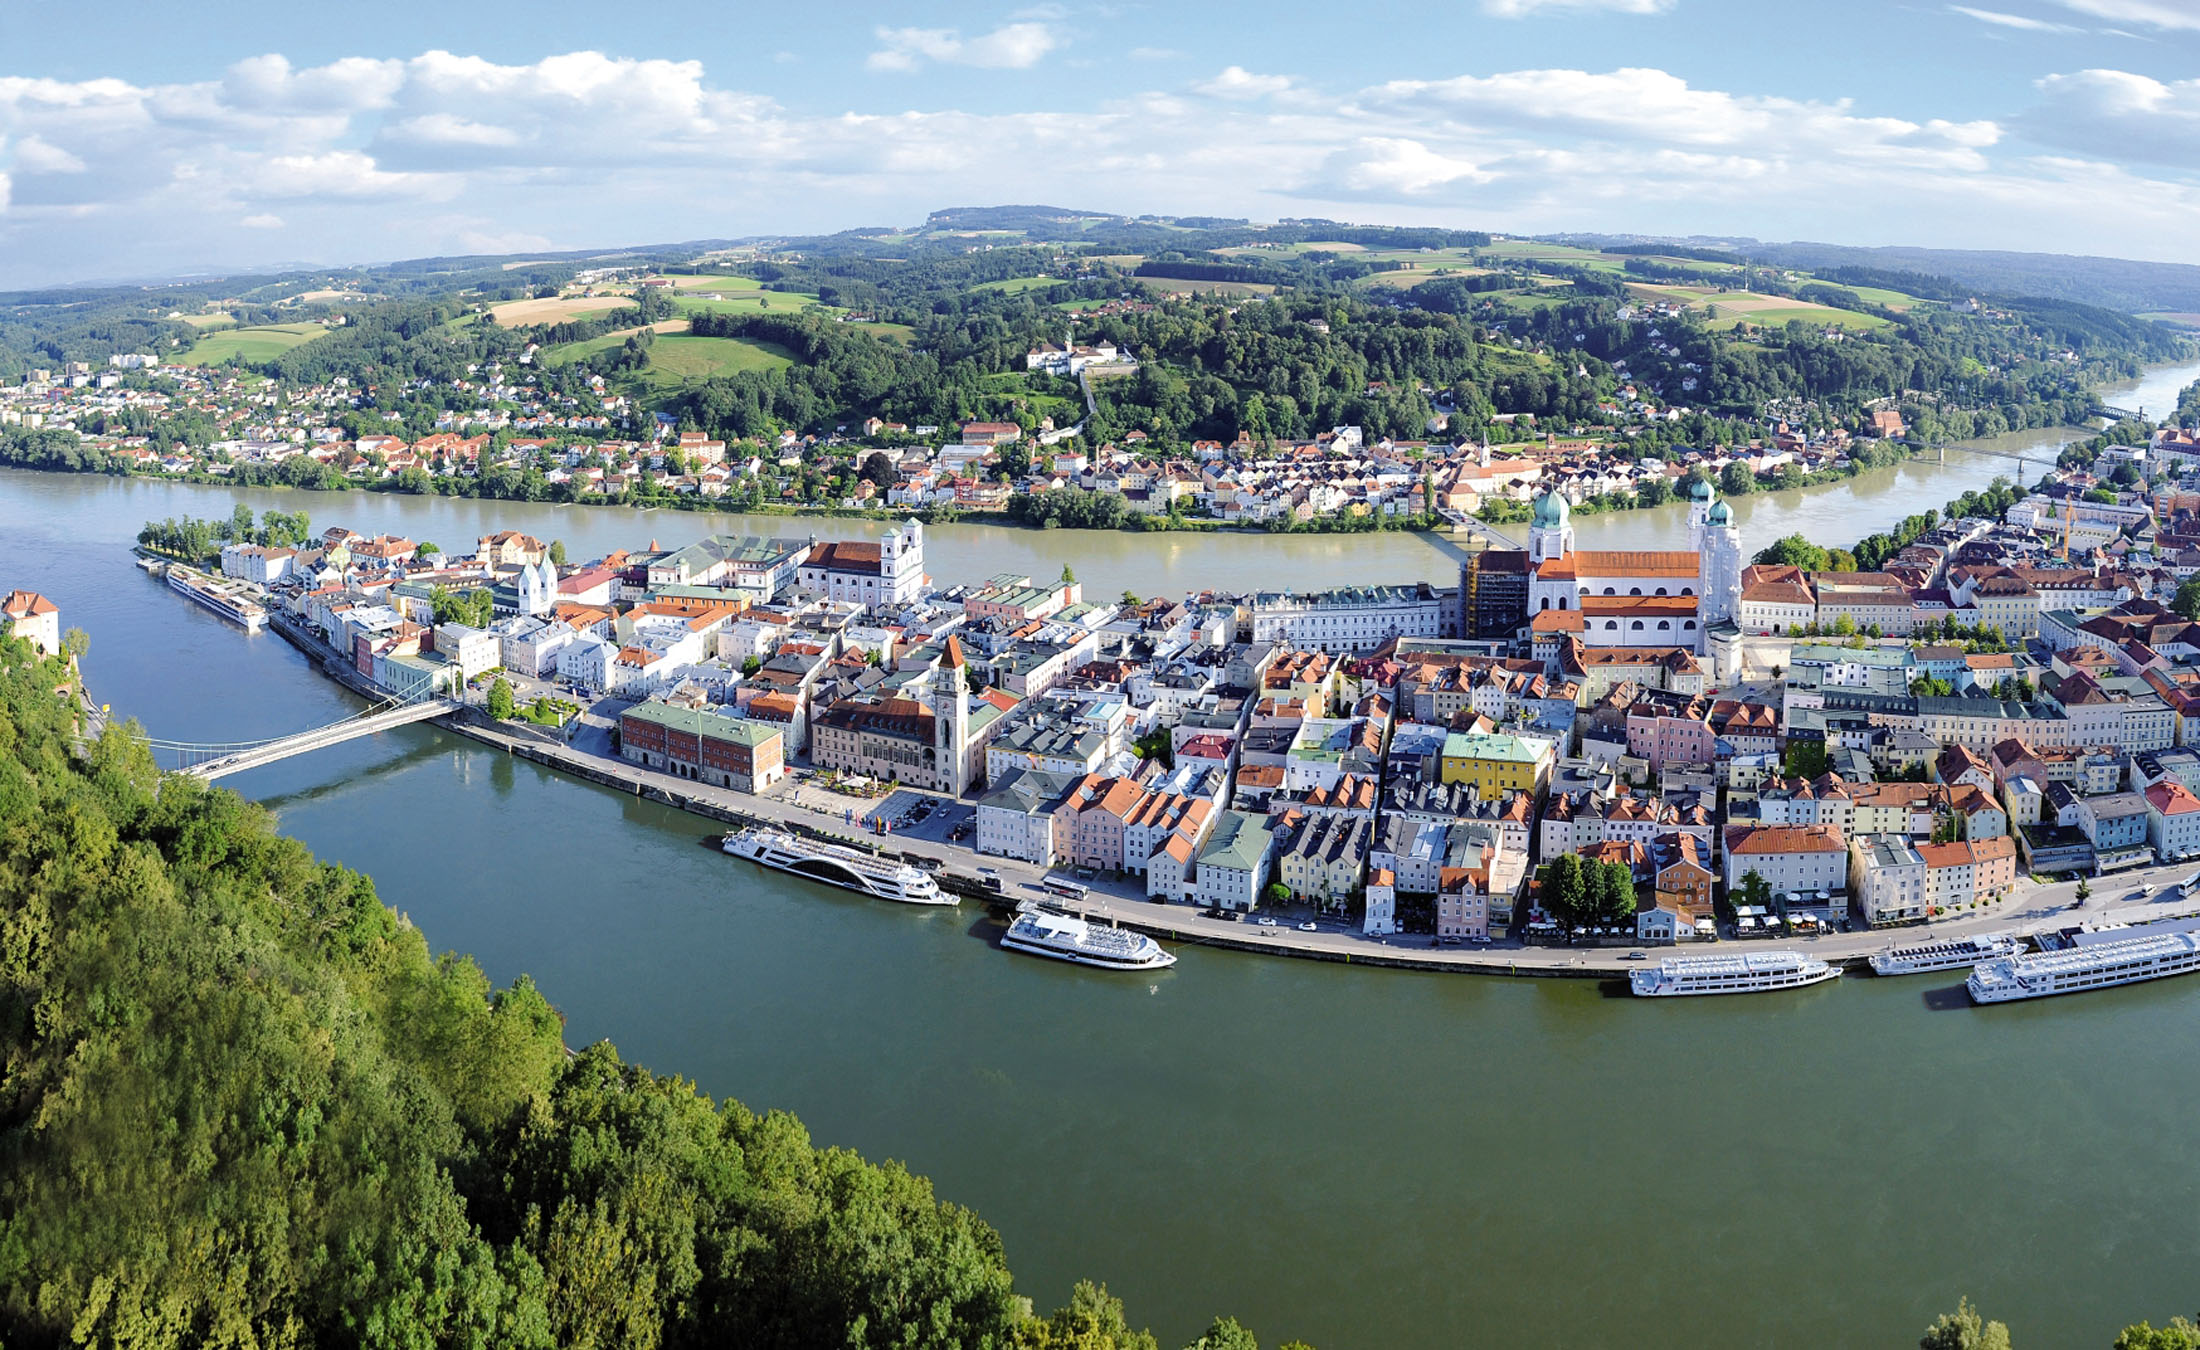 Three rivers from three directions meet at the so-called Dreiflüsseeck: Danube, Inn and Ilz offer an impressive natural spectacle here.